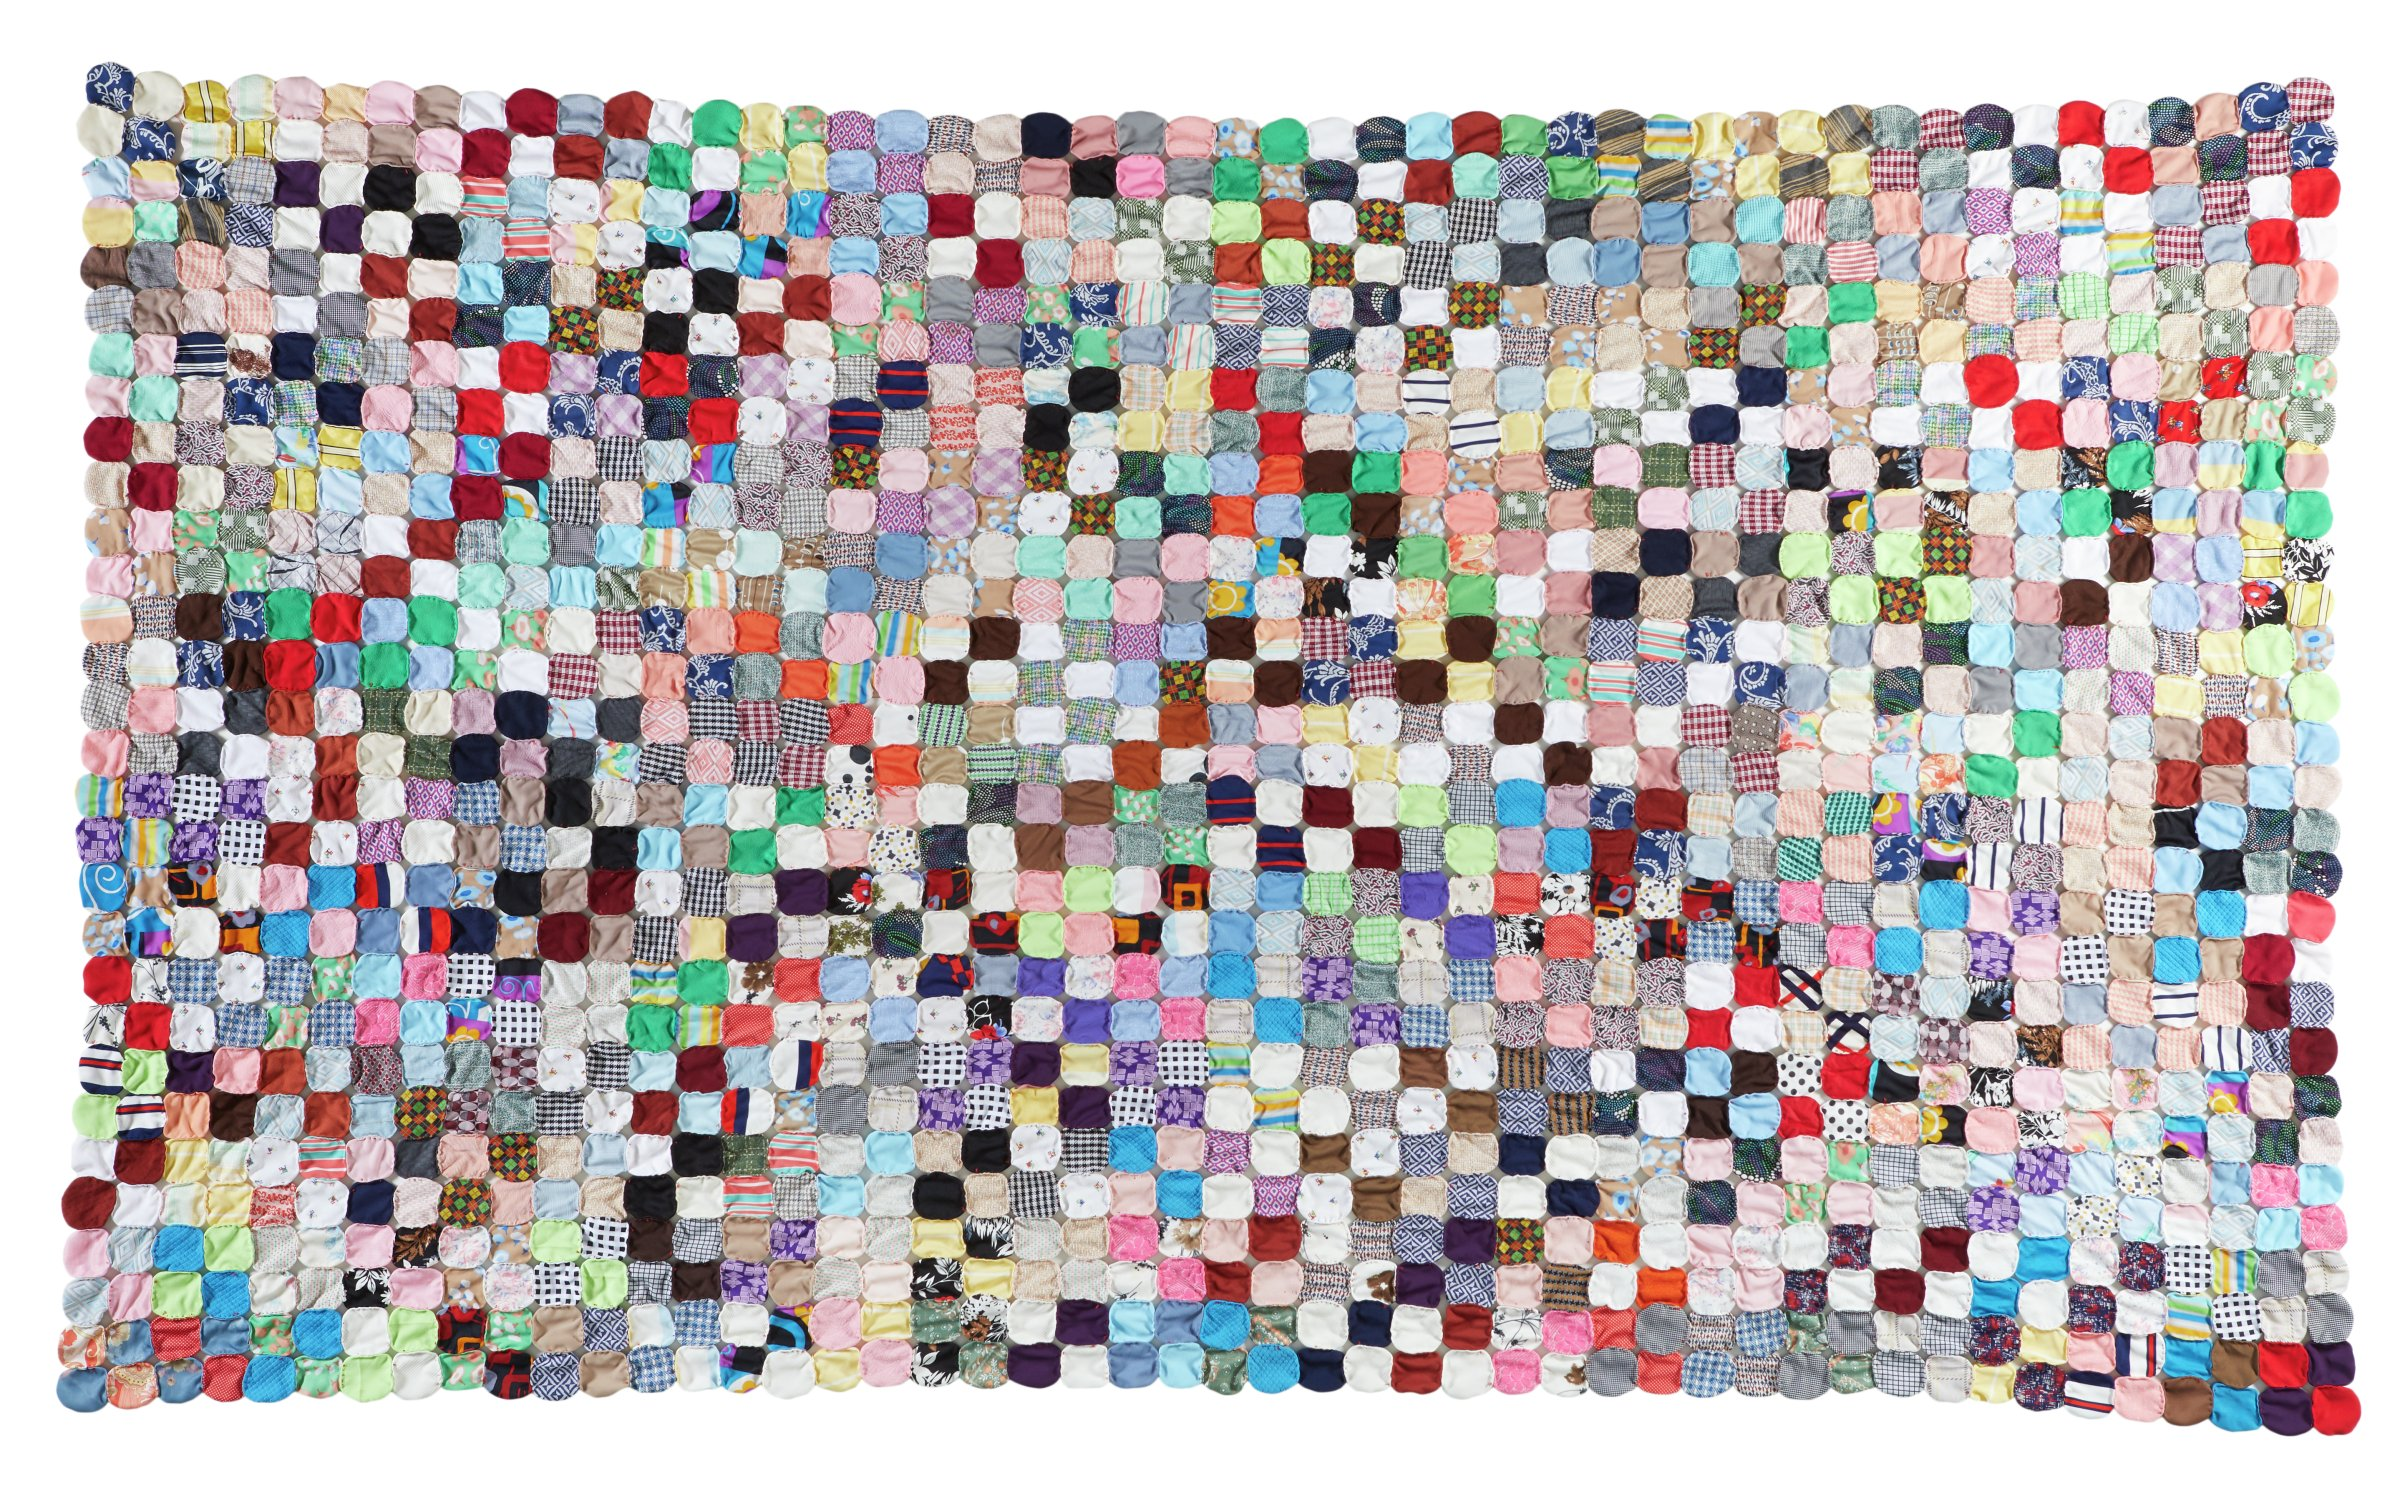 Large, rectangular yo-yo quilt or coverlet made from round pieces of cotton-polyester blend fabrics in a wide variety of patterns and colors, including gingham, houndstooth, stripes, plaids, floral and geometric prints, polka dots, and plain colors, that have long stitches along their turned-under outer edges, which are pulled to form small rosettes or discs, each hand sewn side by side with red thread into rows to form the quilt, no batting and no backing.